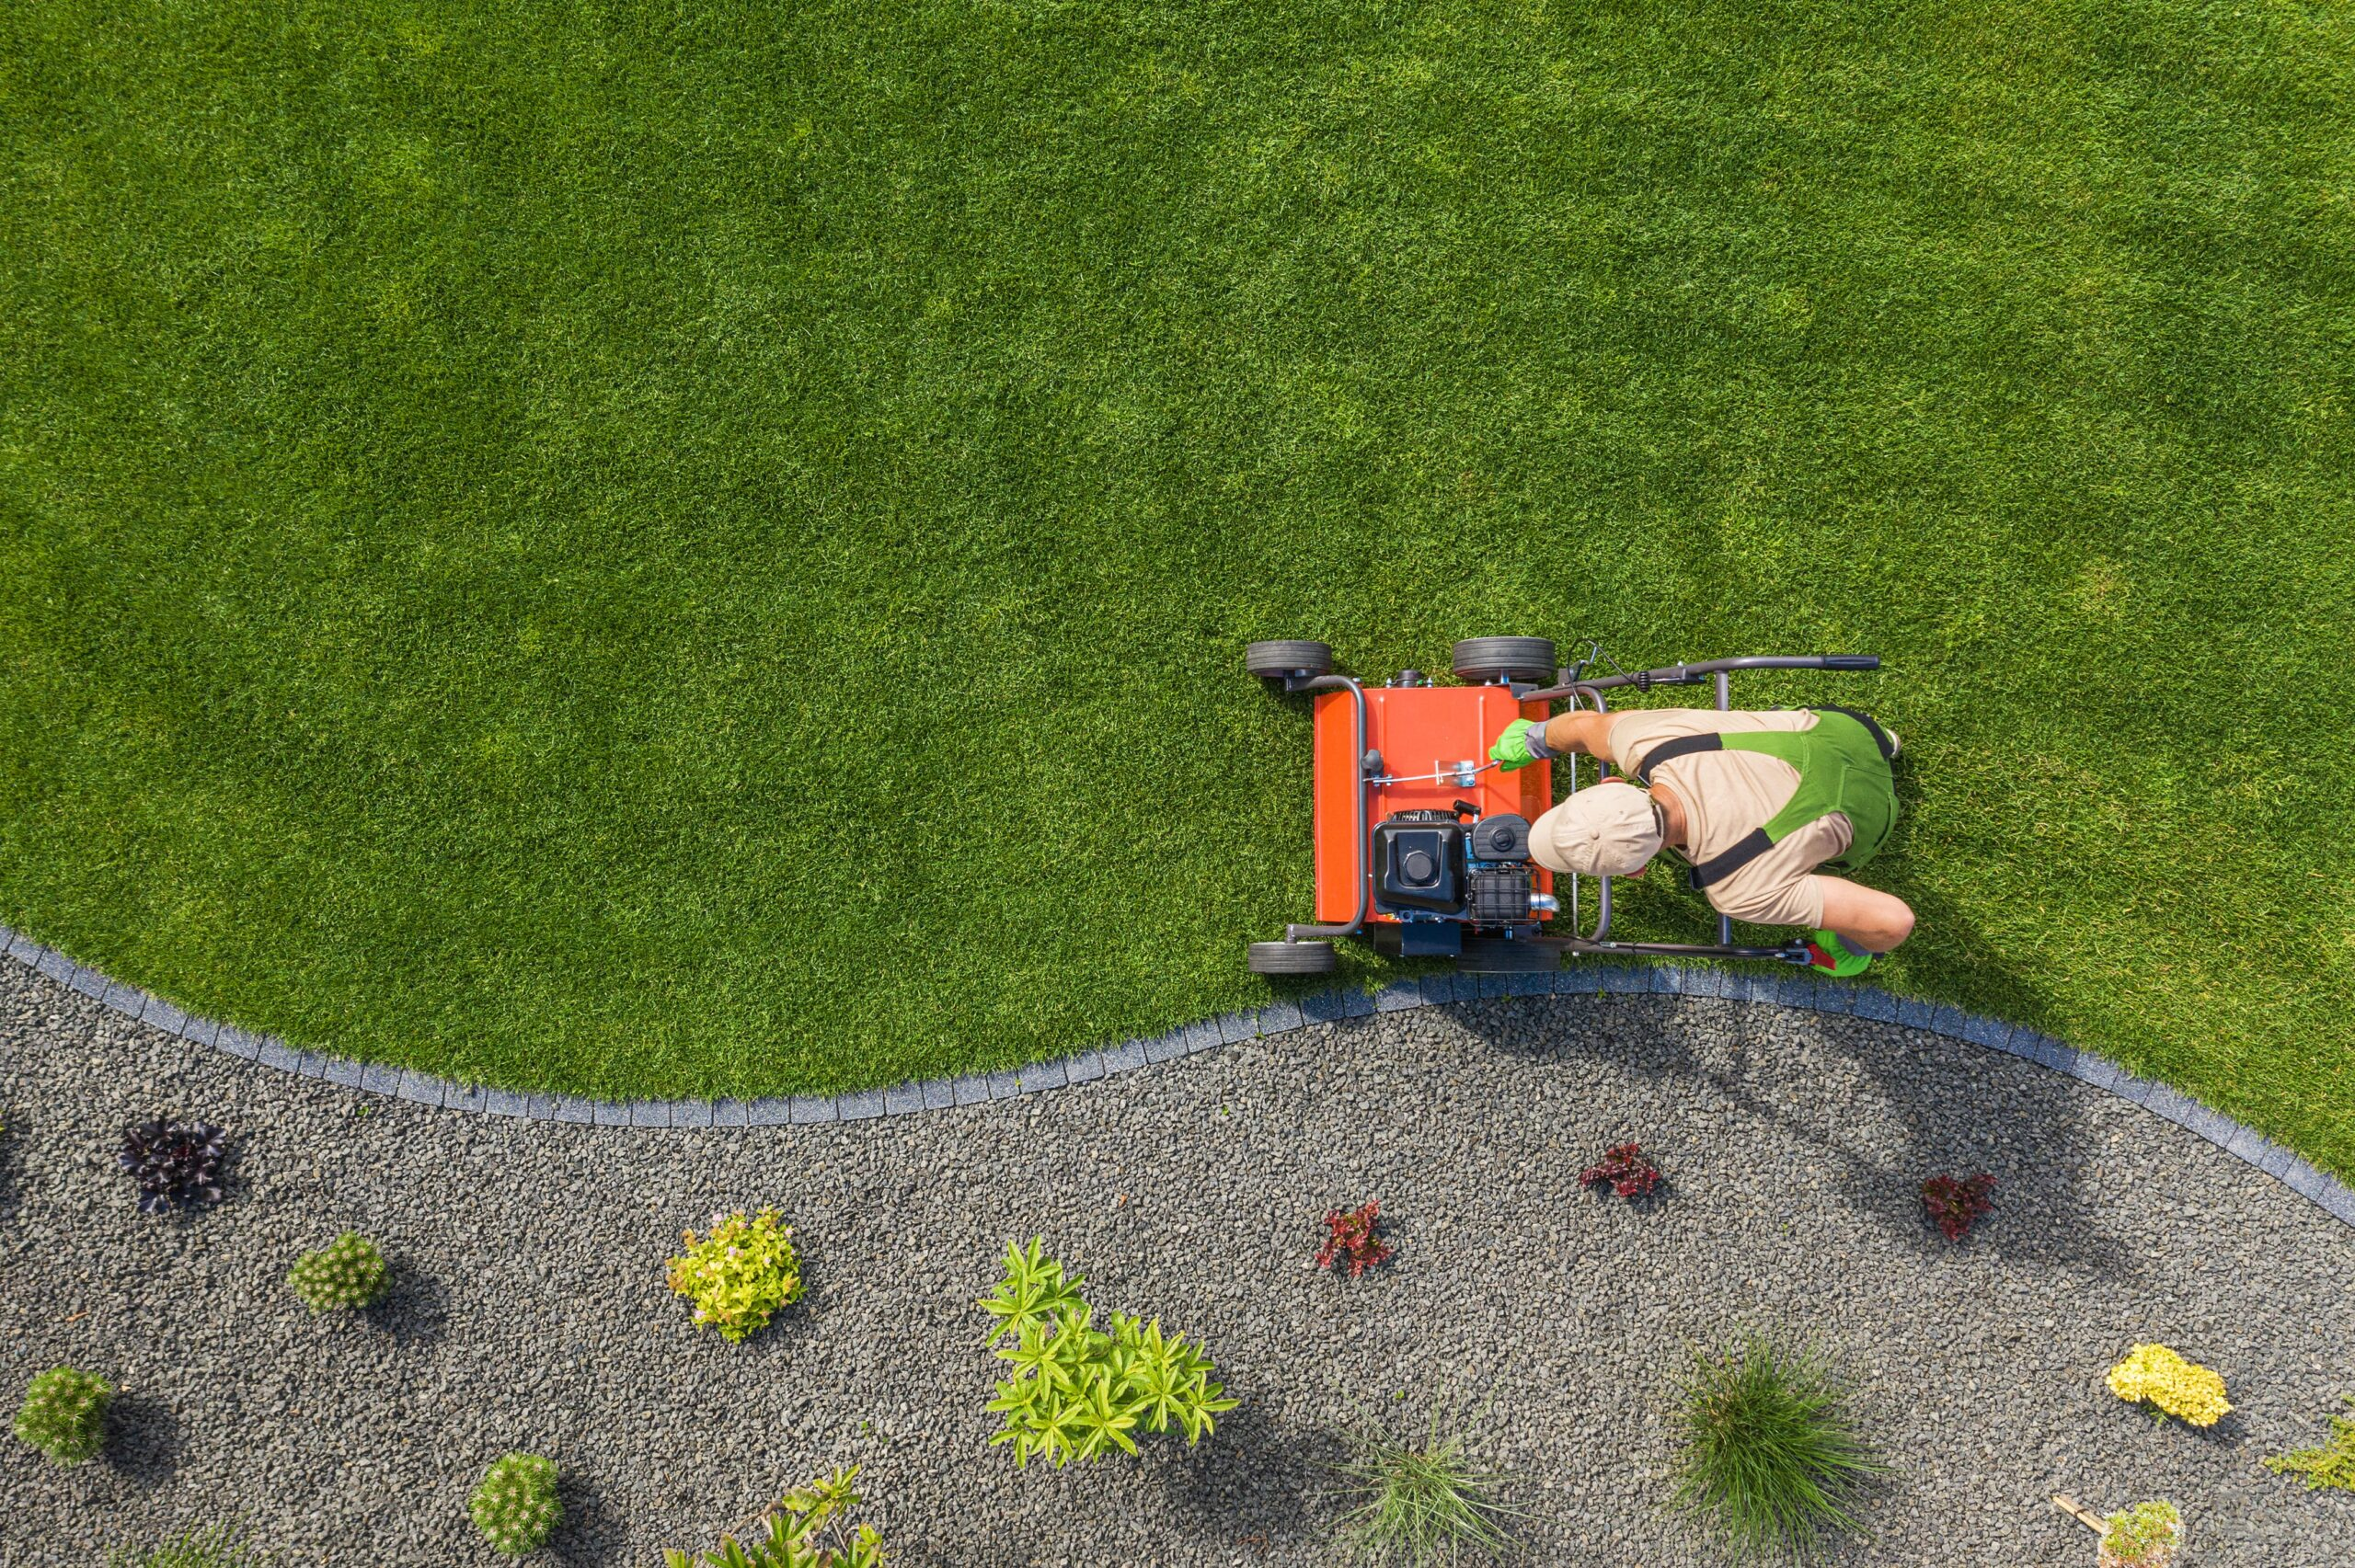 lawn aerator job for controlling lawn thatch and s VQQEQ2Q min scaled